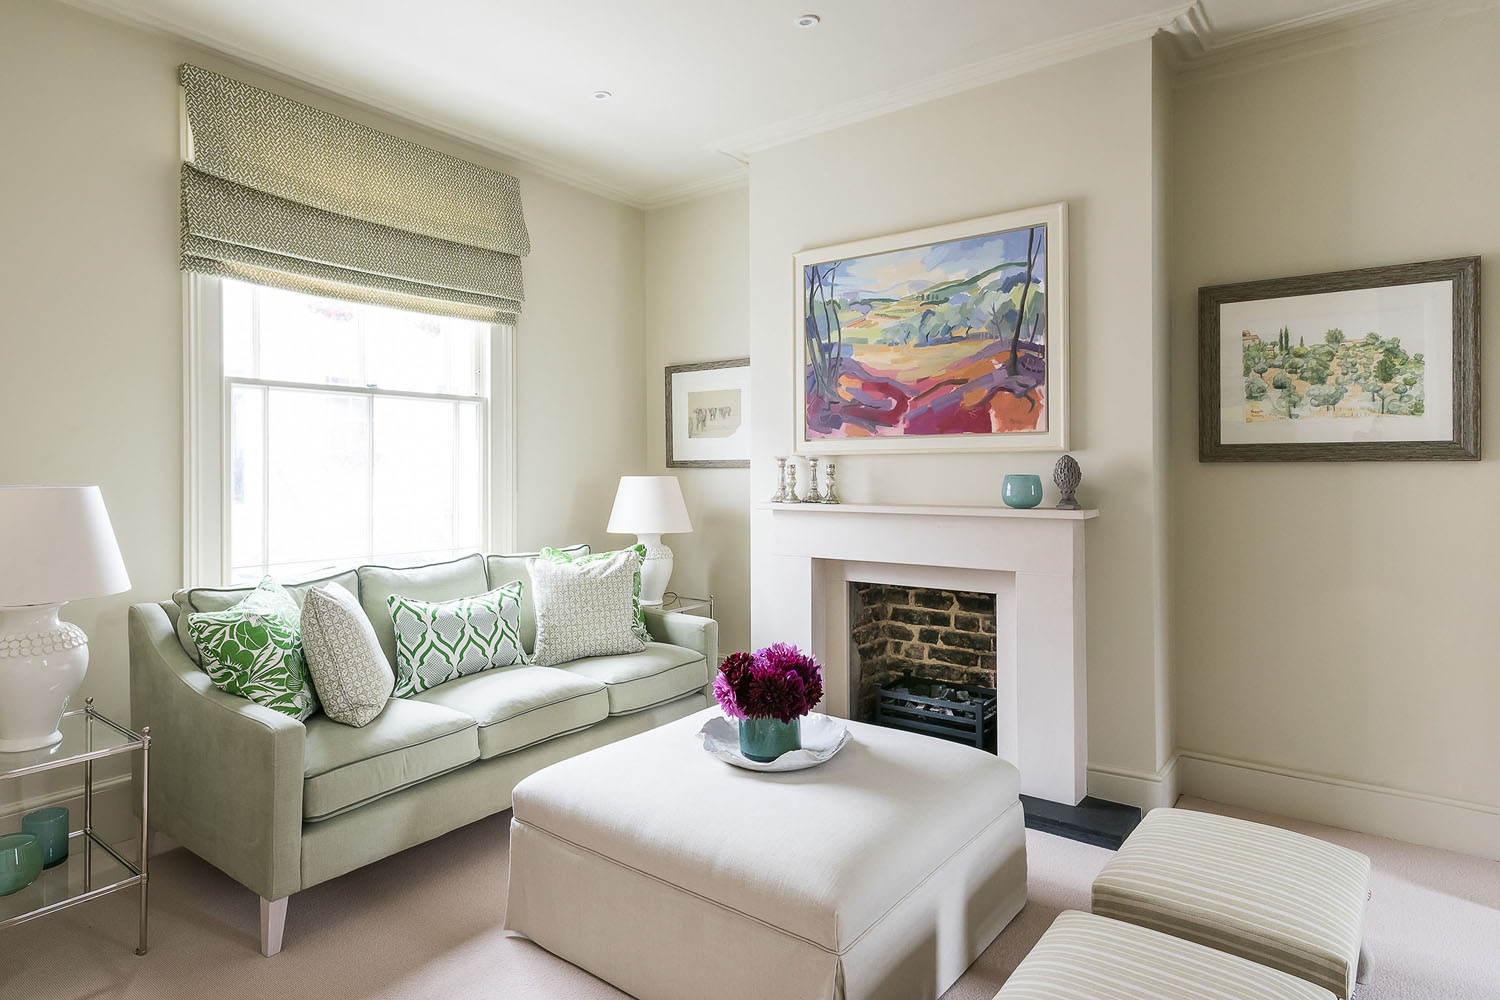 White Living Room with Accents in Vibrant Green